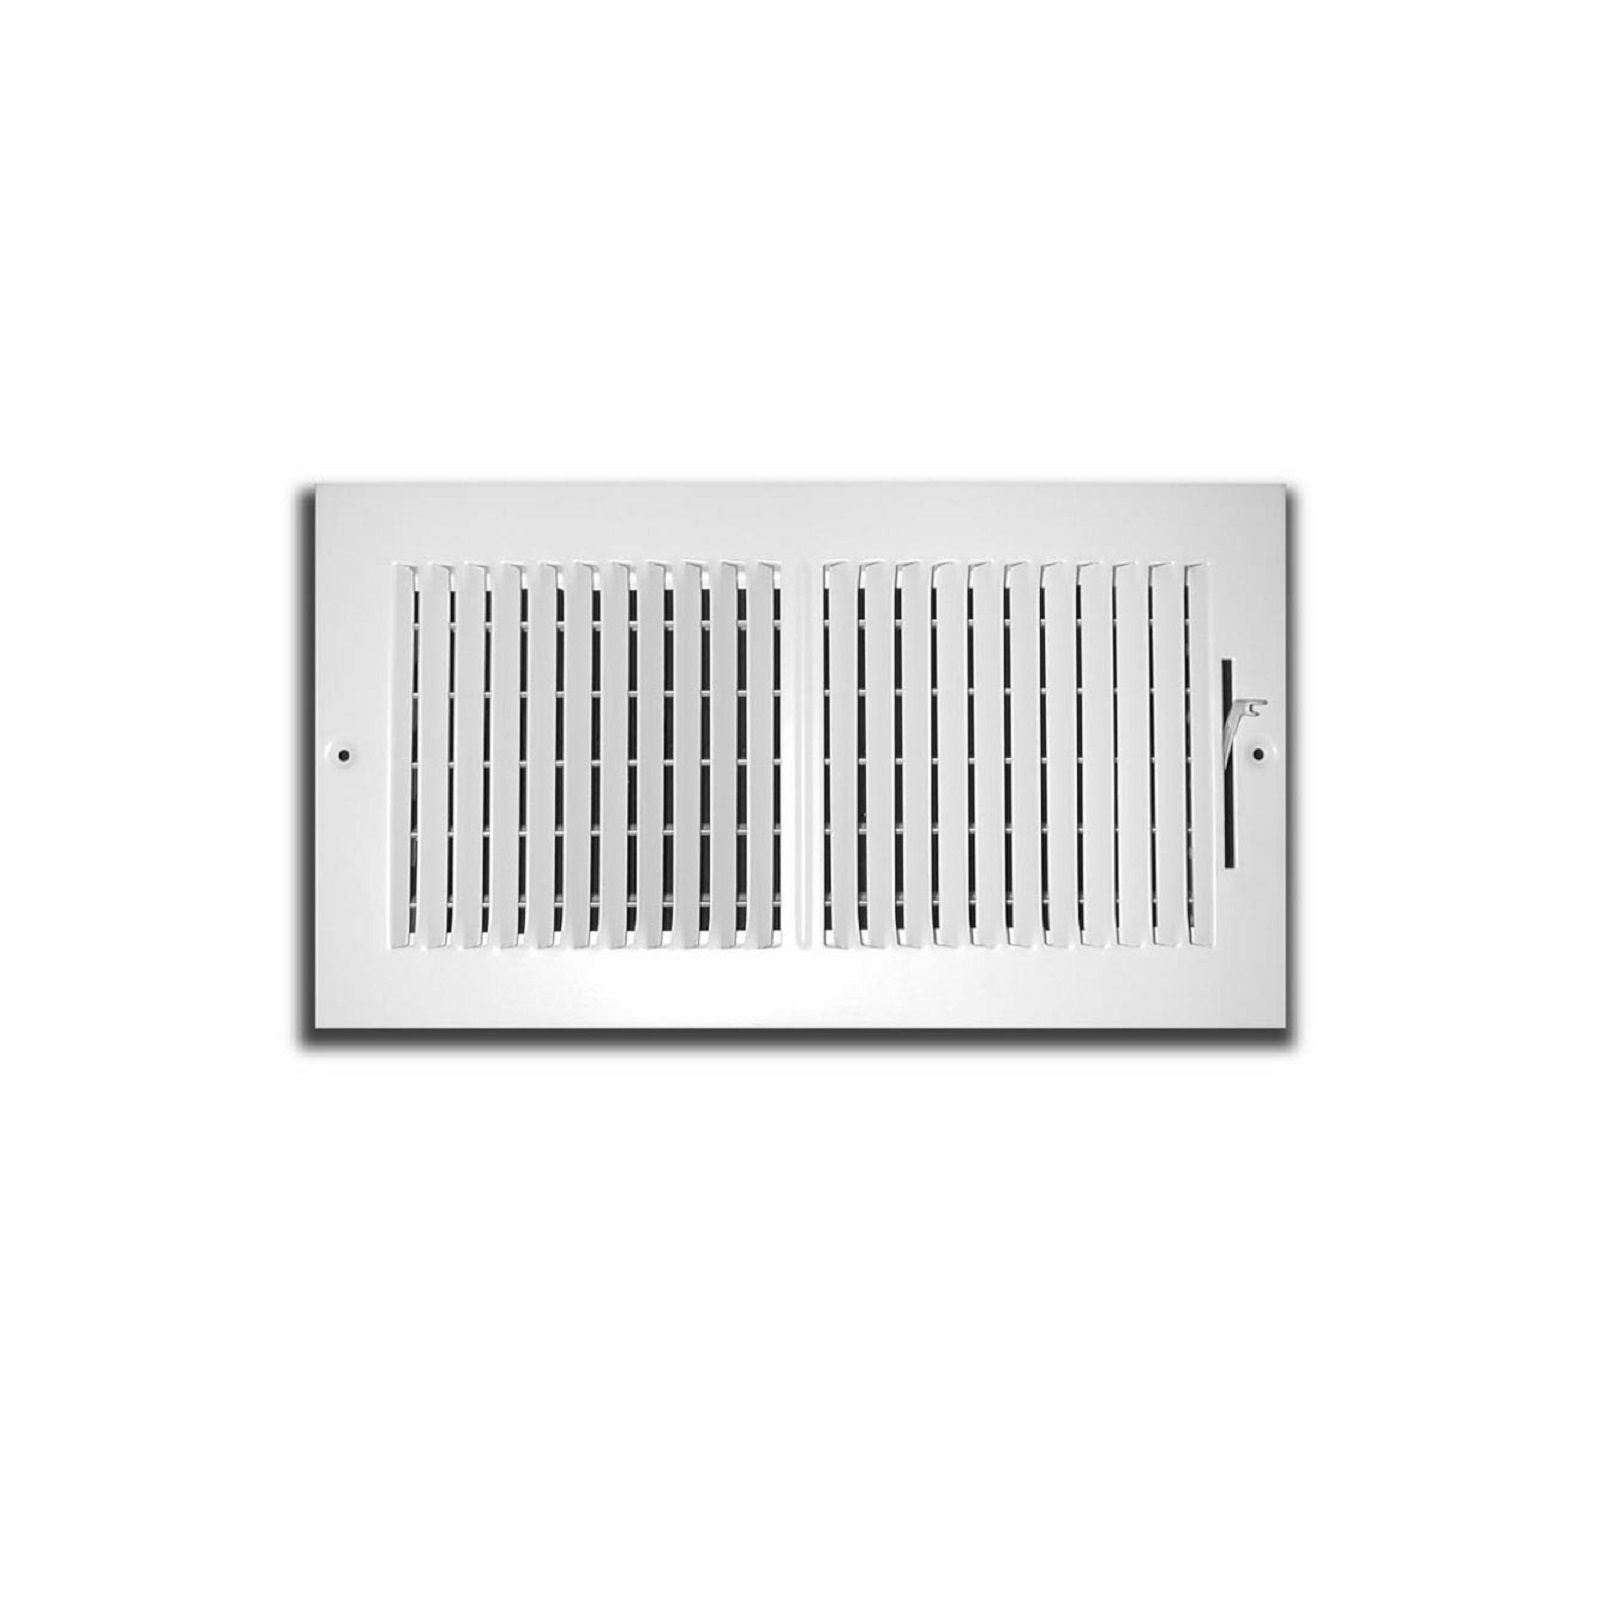 "TRUaire 102M 20X06 - Stamped Steel 2-Way Wall/Ceiling Register, 20"" X 06"""